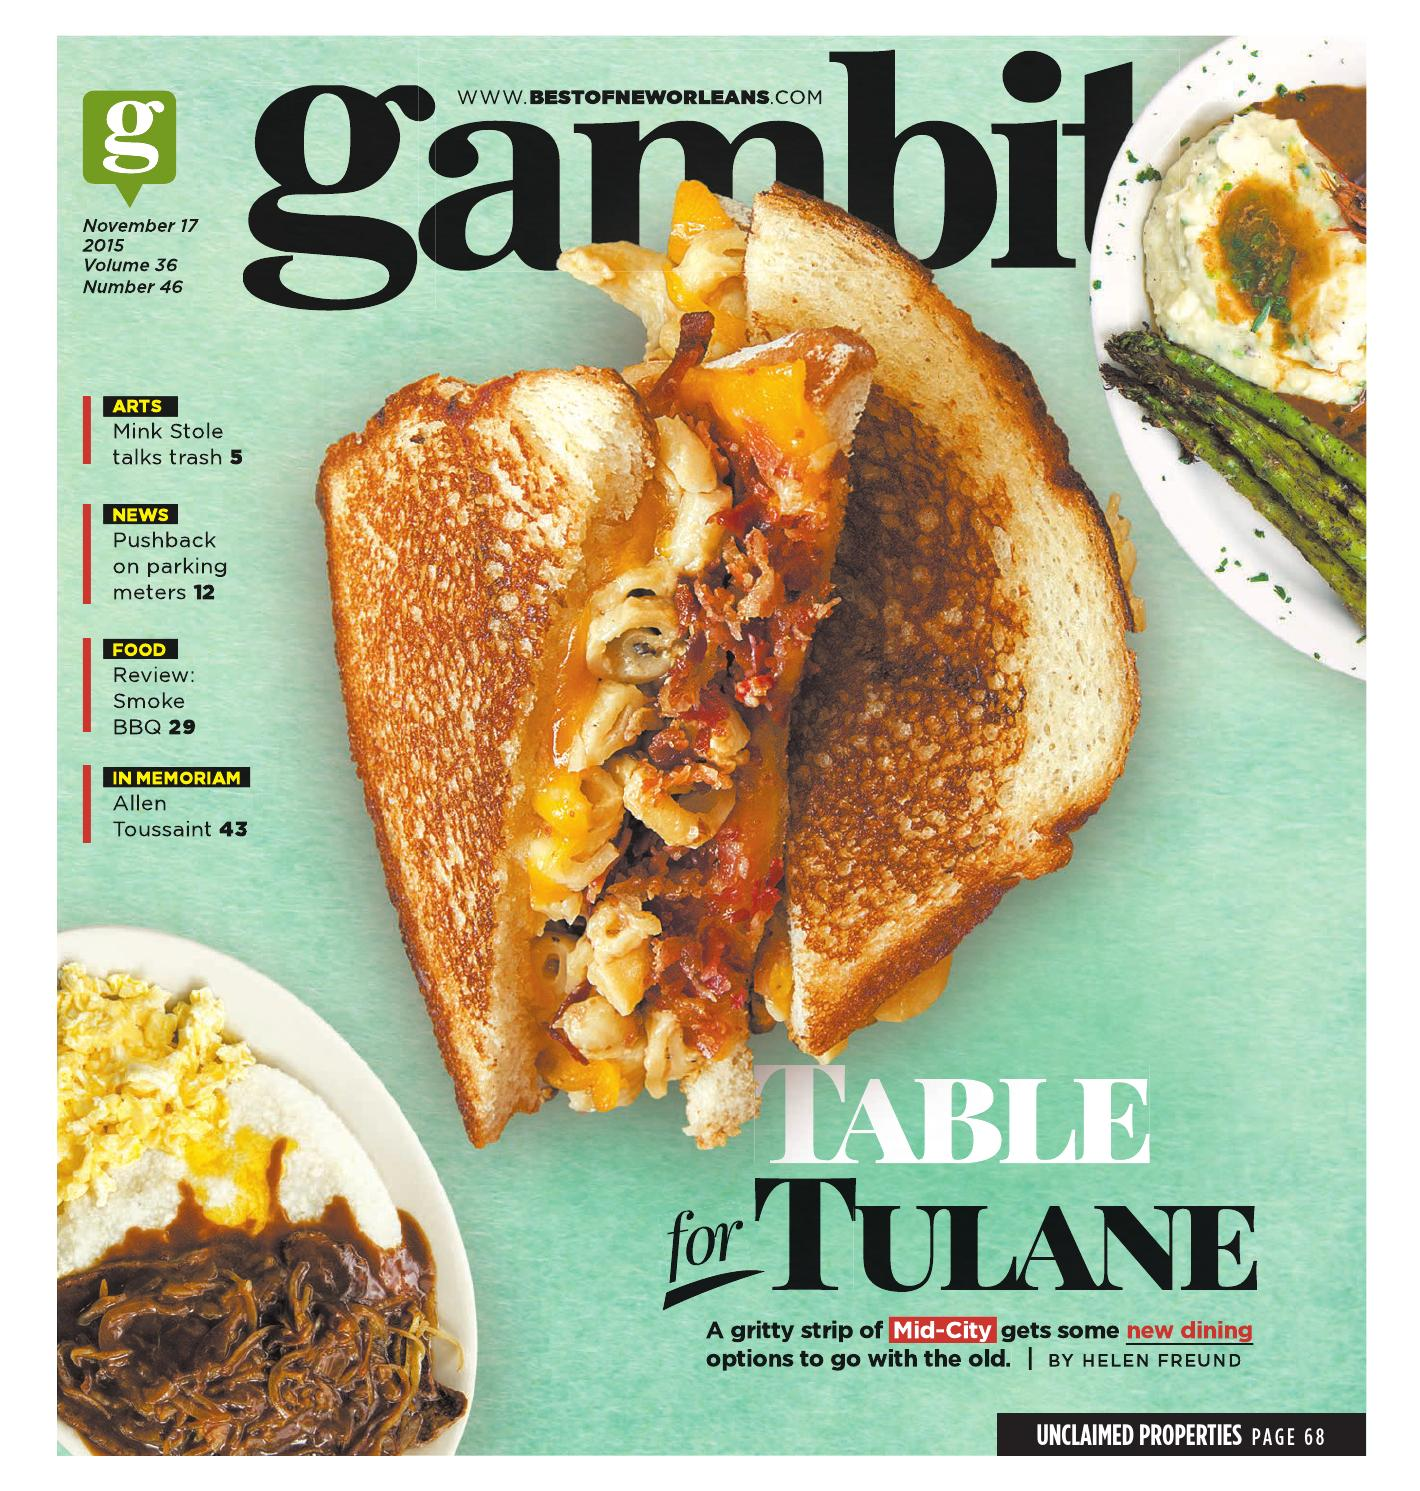 Xavier Darre Cuisine Raison Gambit New Orleans November 17 2015 By Gambit New Orleans